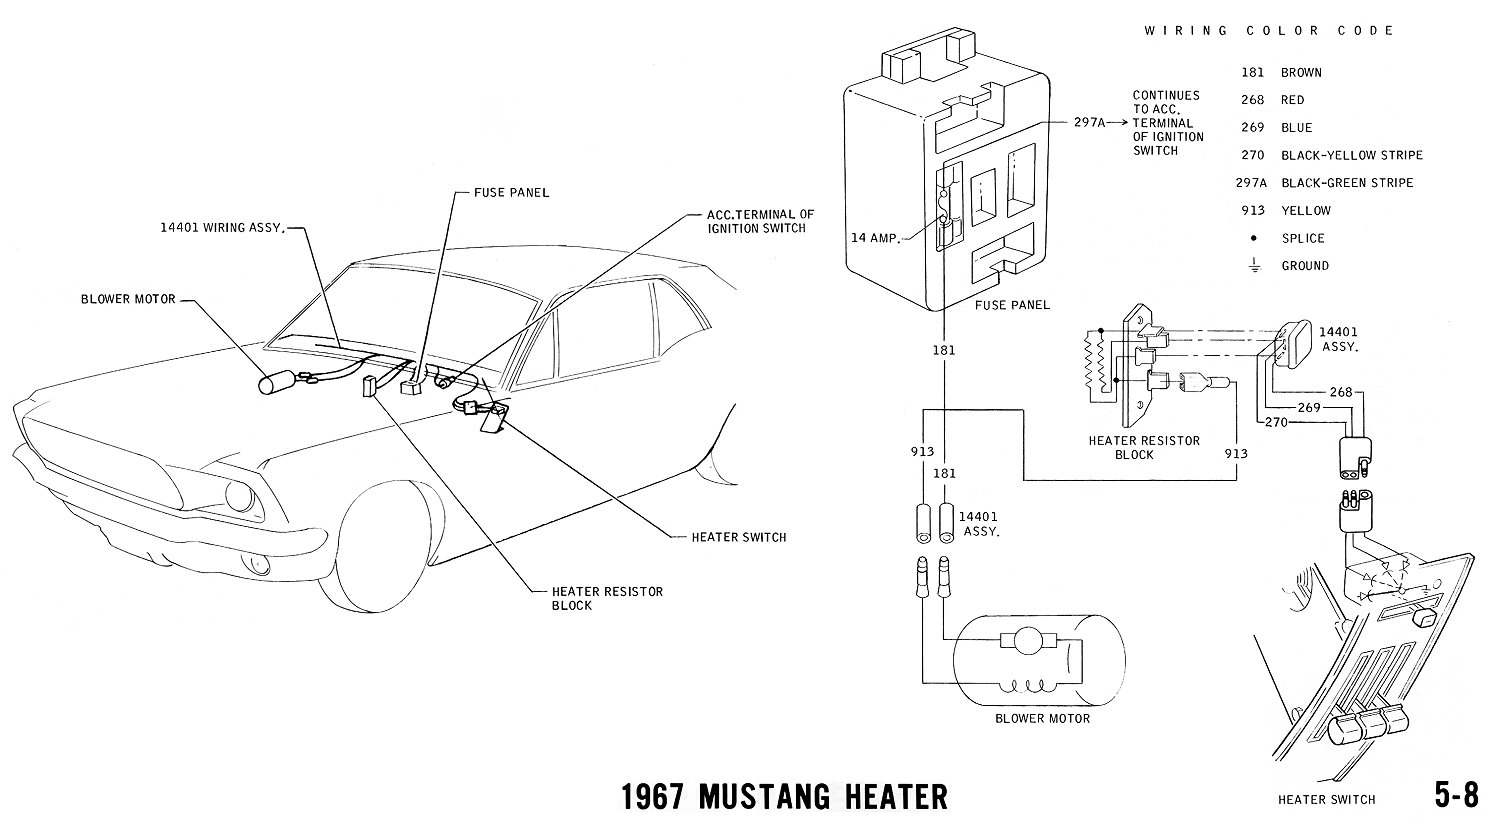 1966 Gto Fuse Panel Diagram Wiring Will Be A Thing 93 Explorer Images Gallery